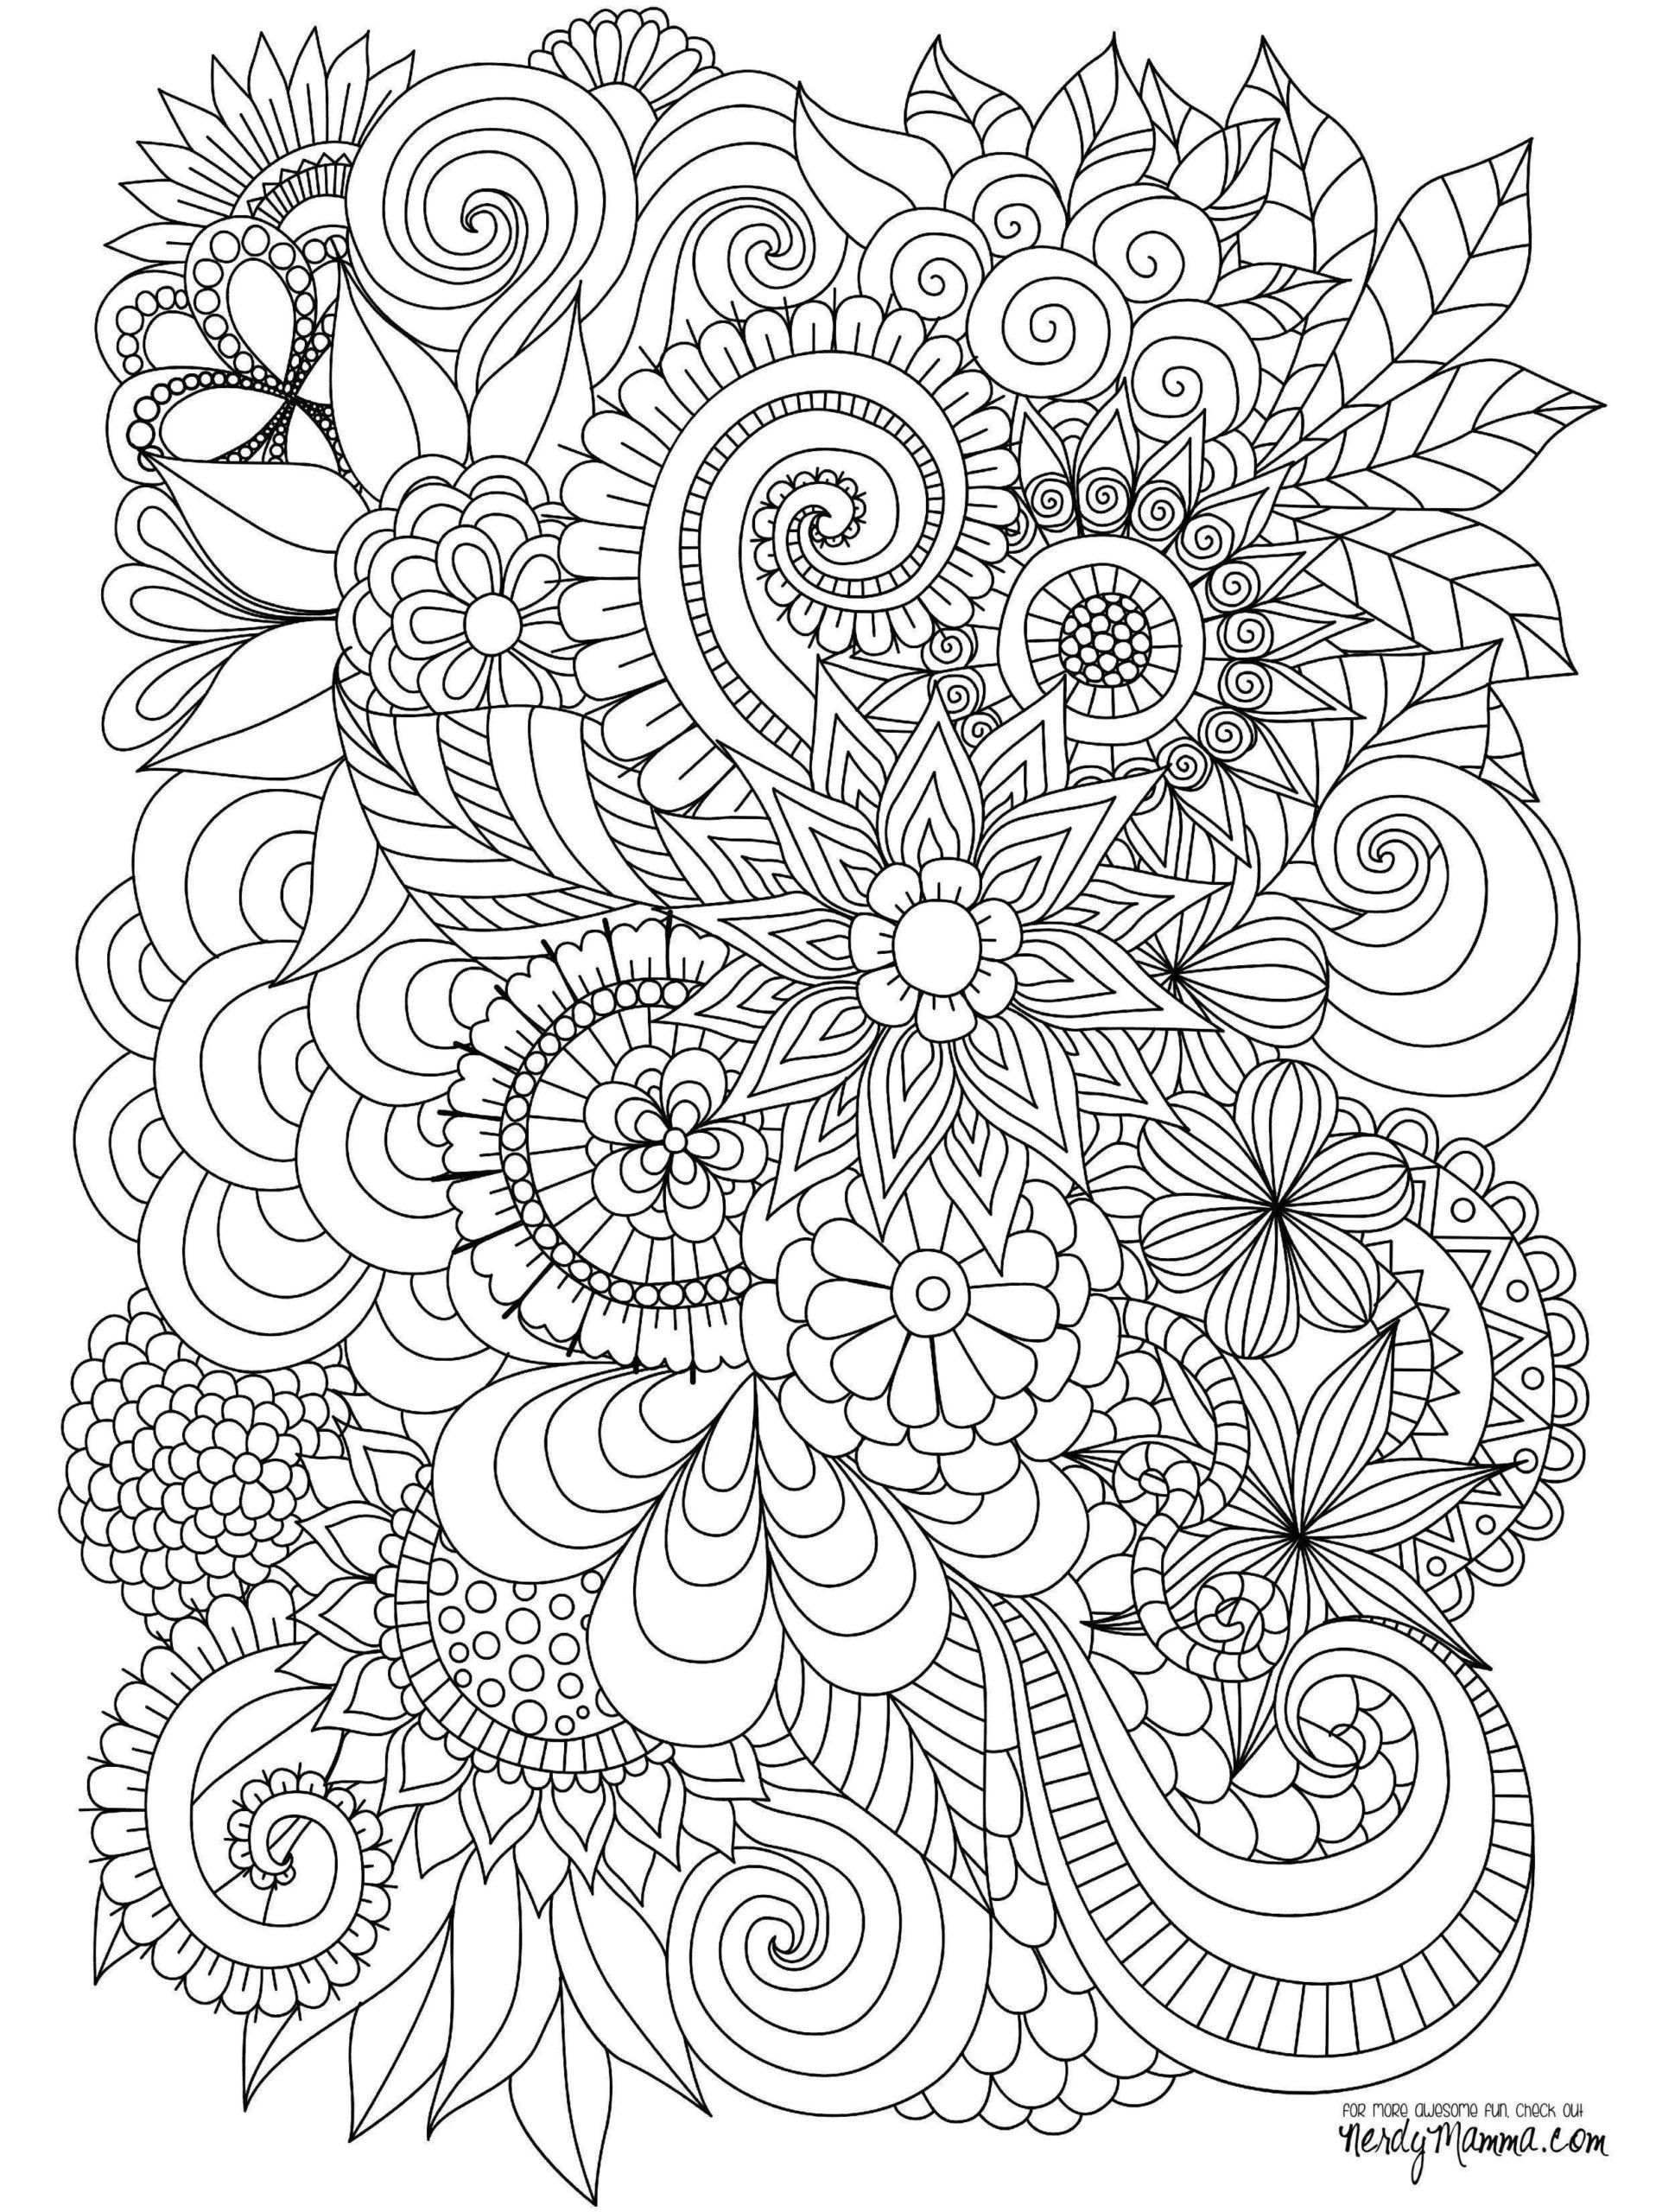 Mandala Online Coloring Pages Coloring Pages Coloring Printable Paisley Advanced Mandala Detailed Coloring Pages Mandala Coloring Books Abstract Coloring Pages